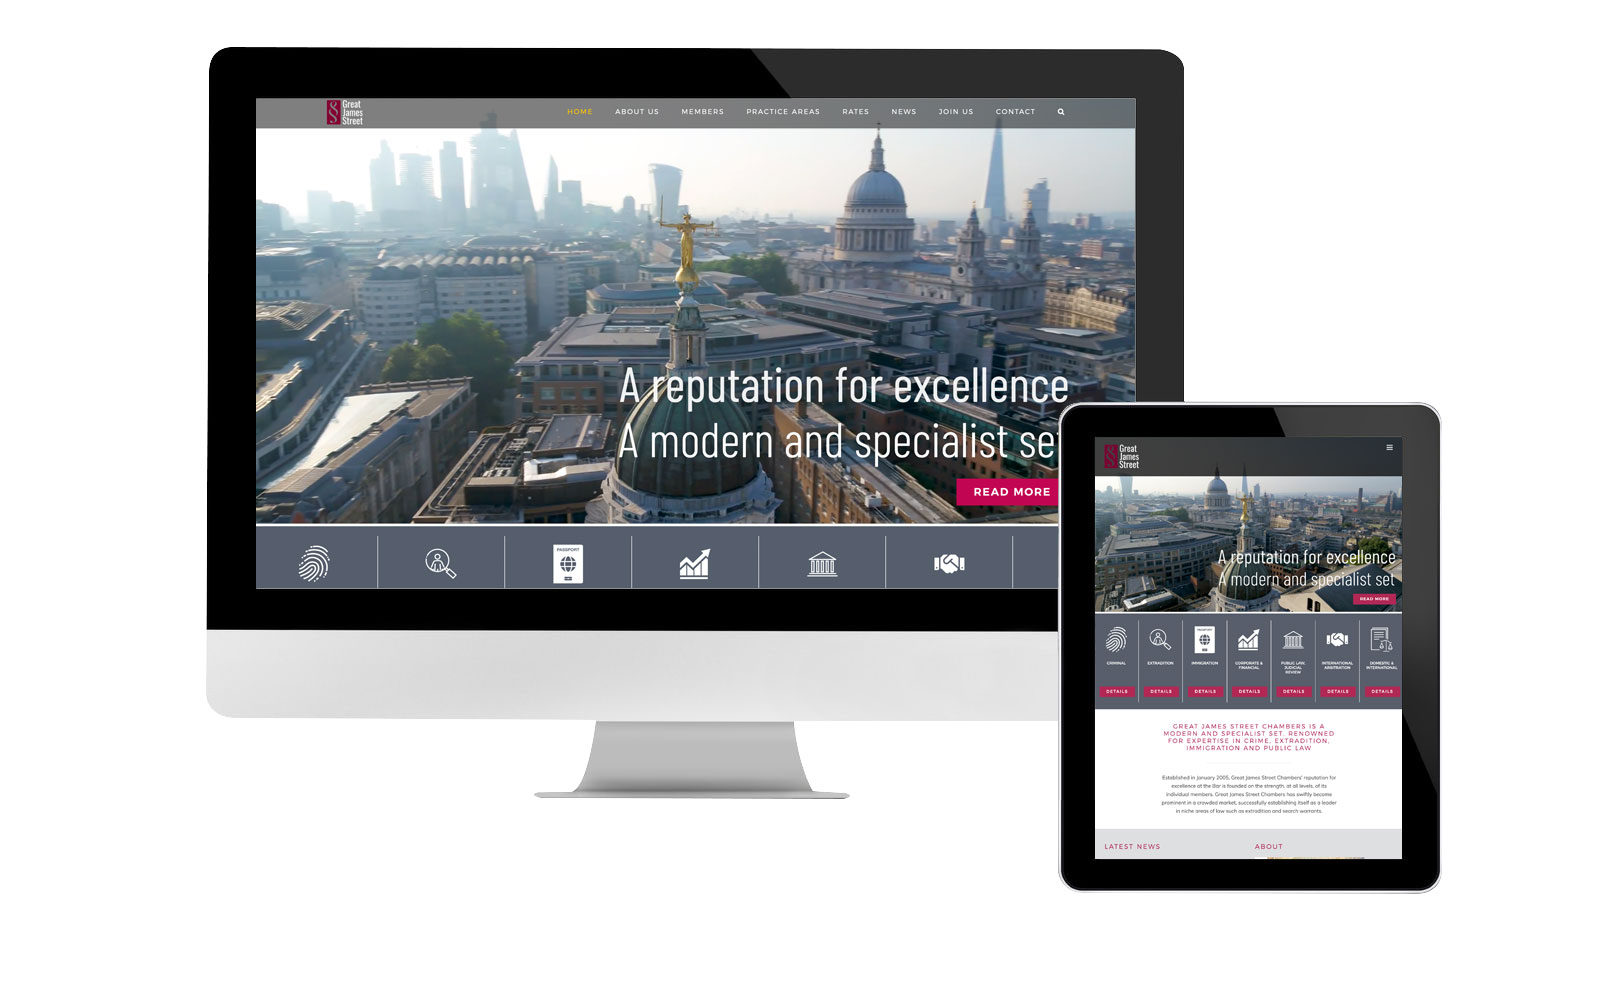 Great James Street website design